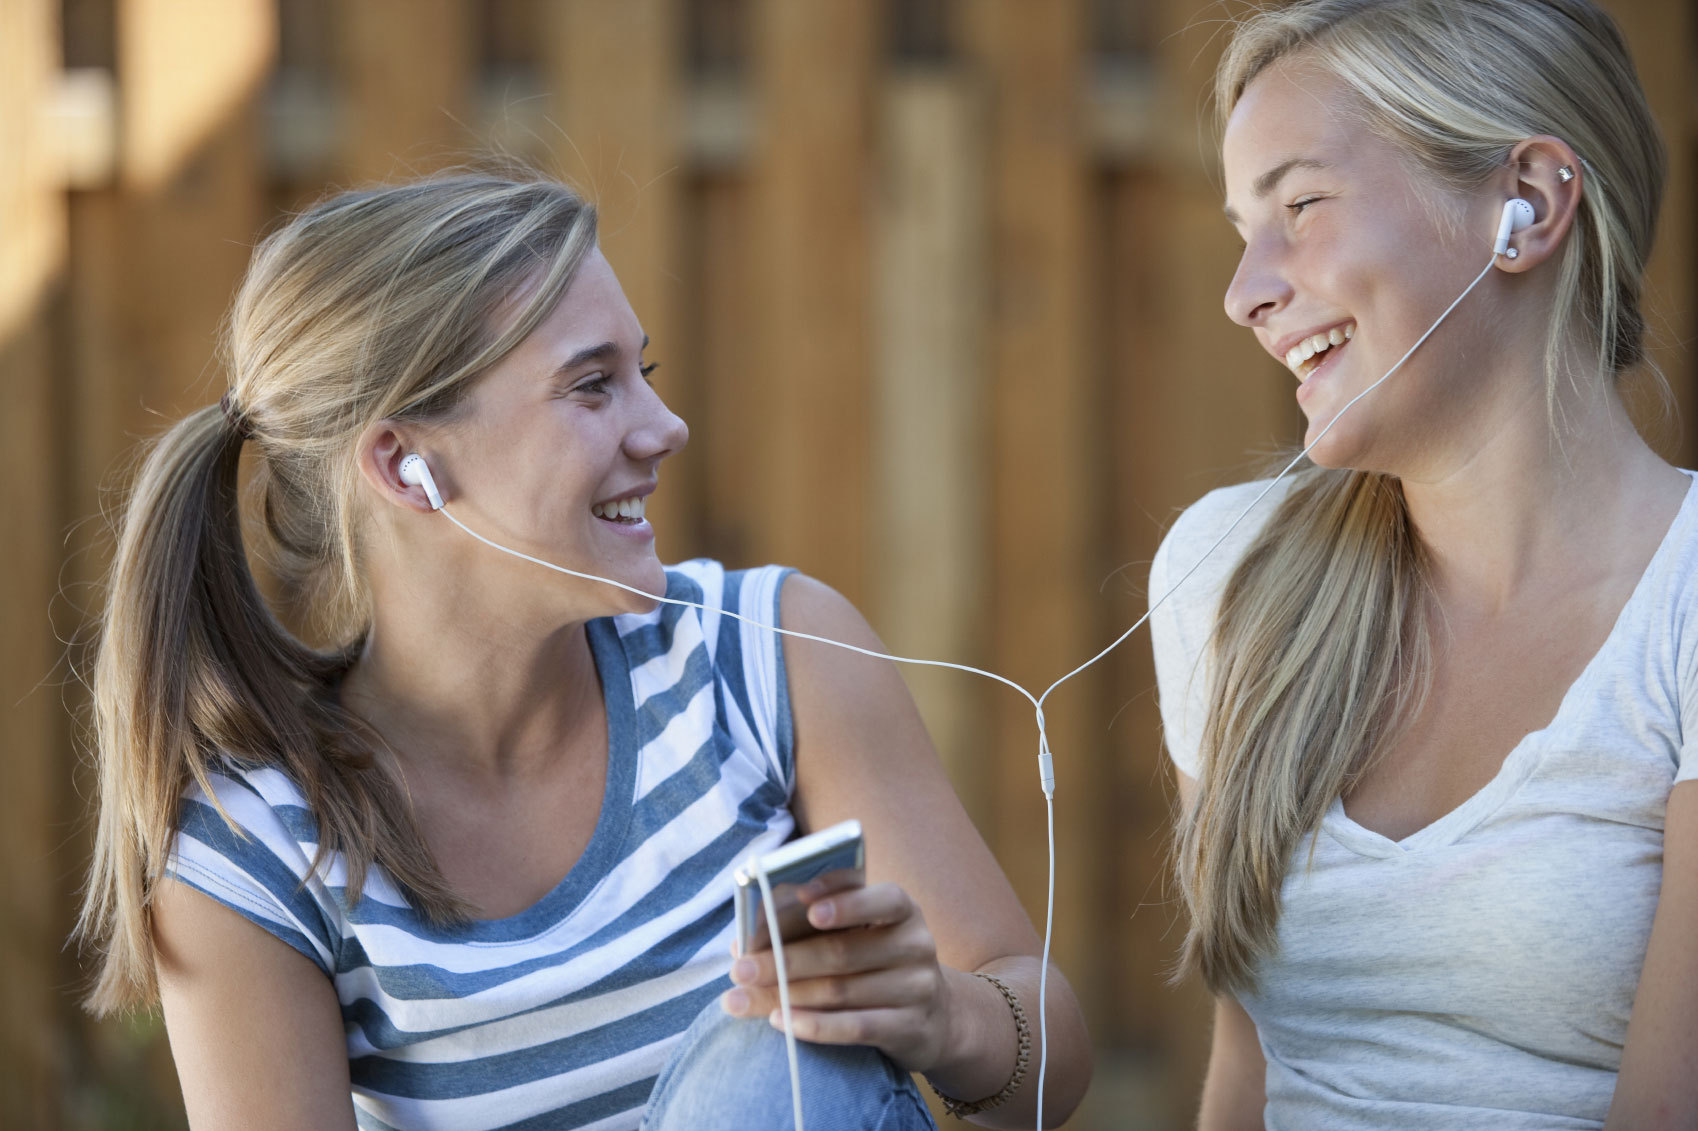 teens_sharing_ear_buds